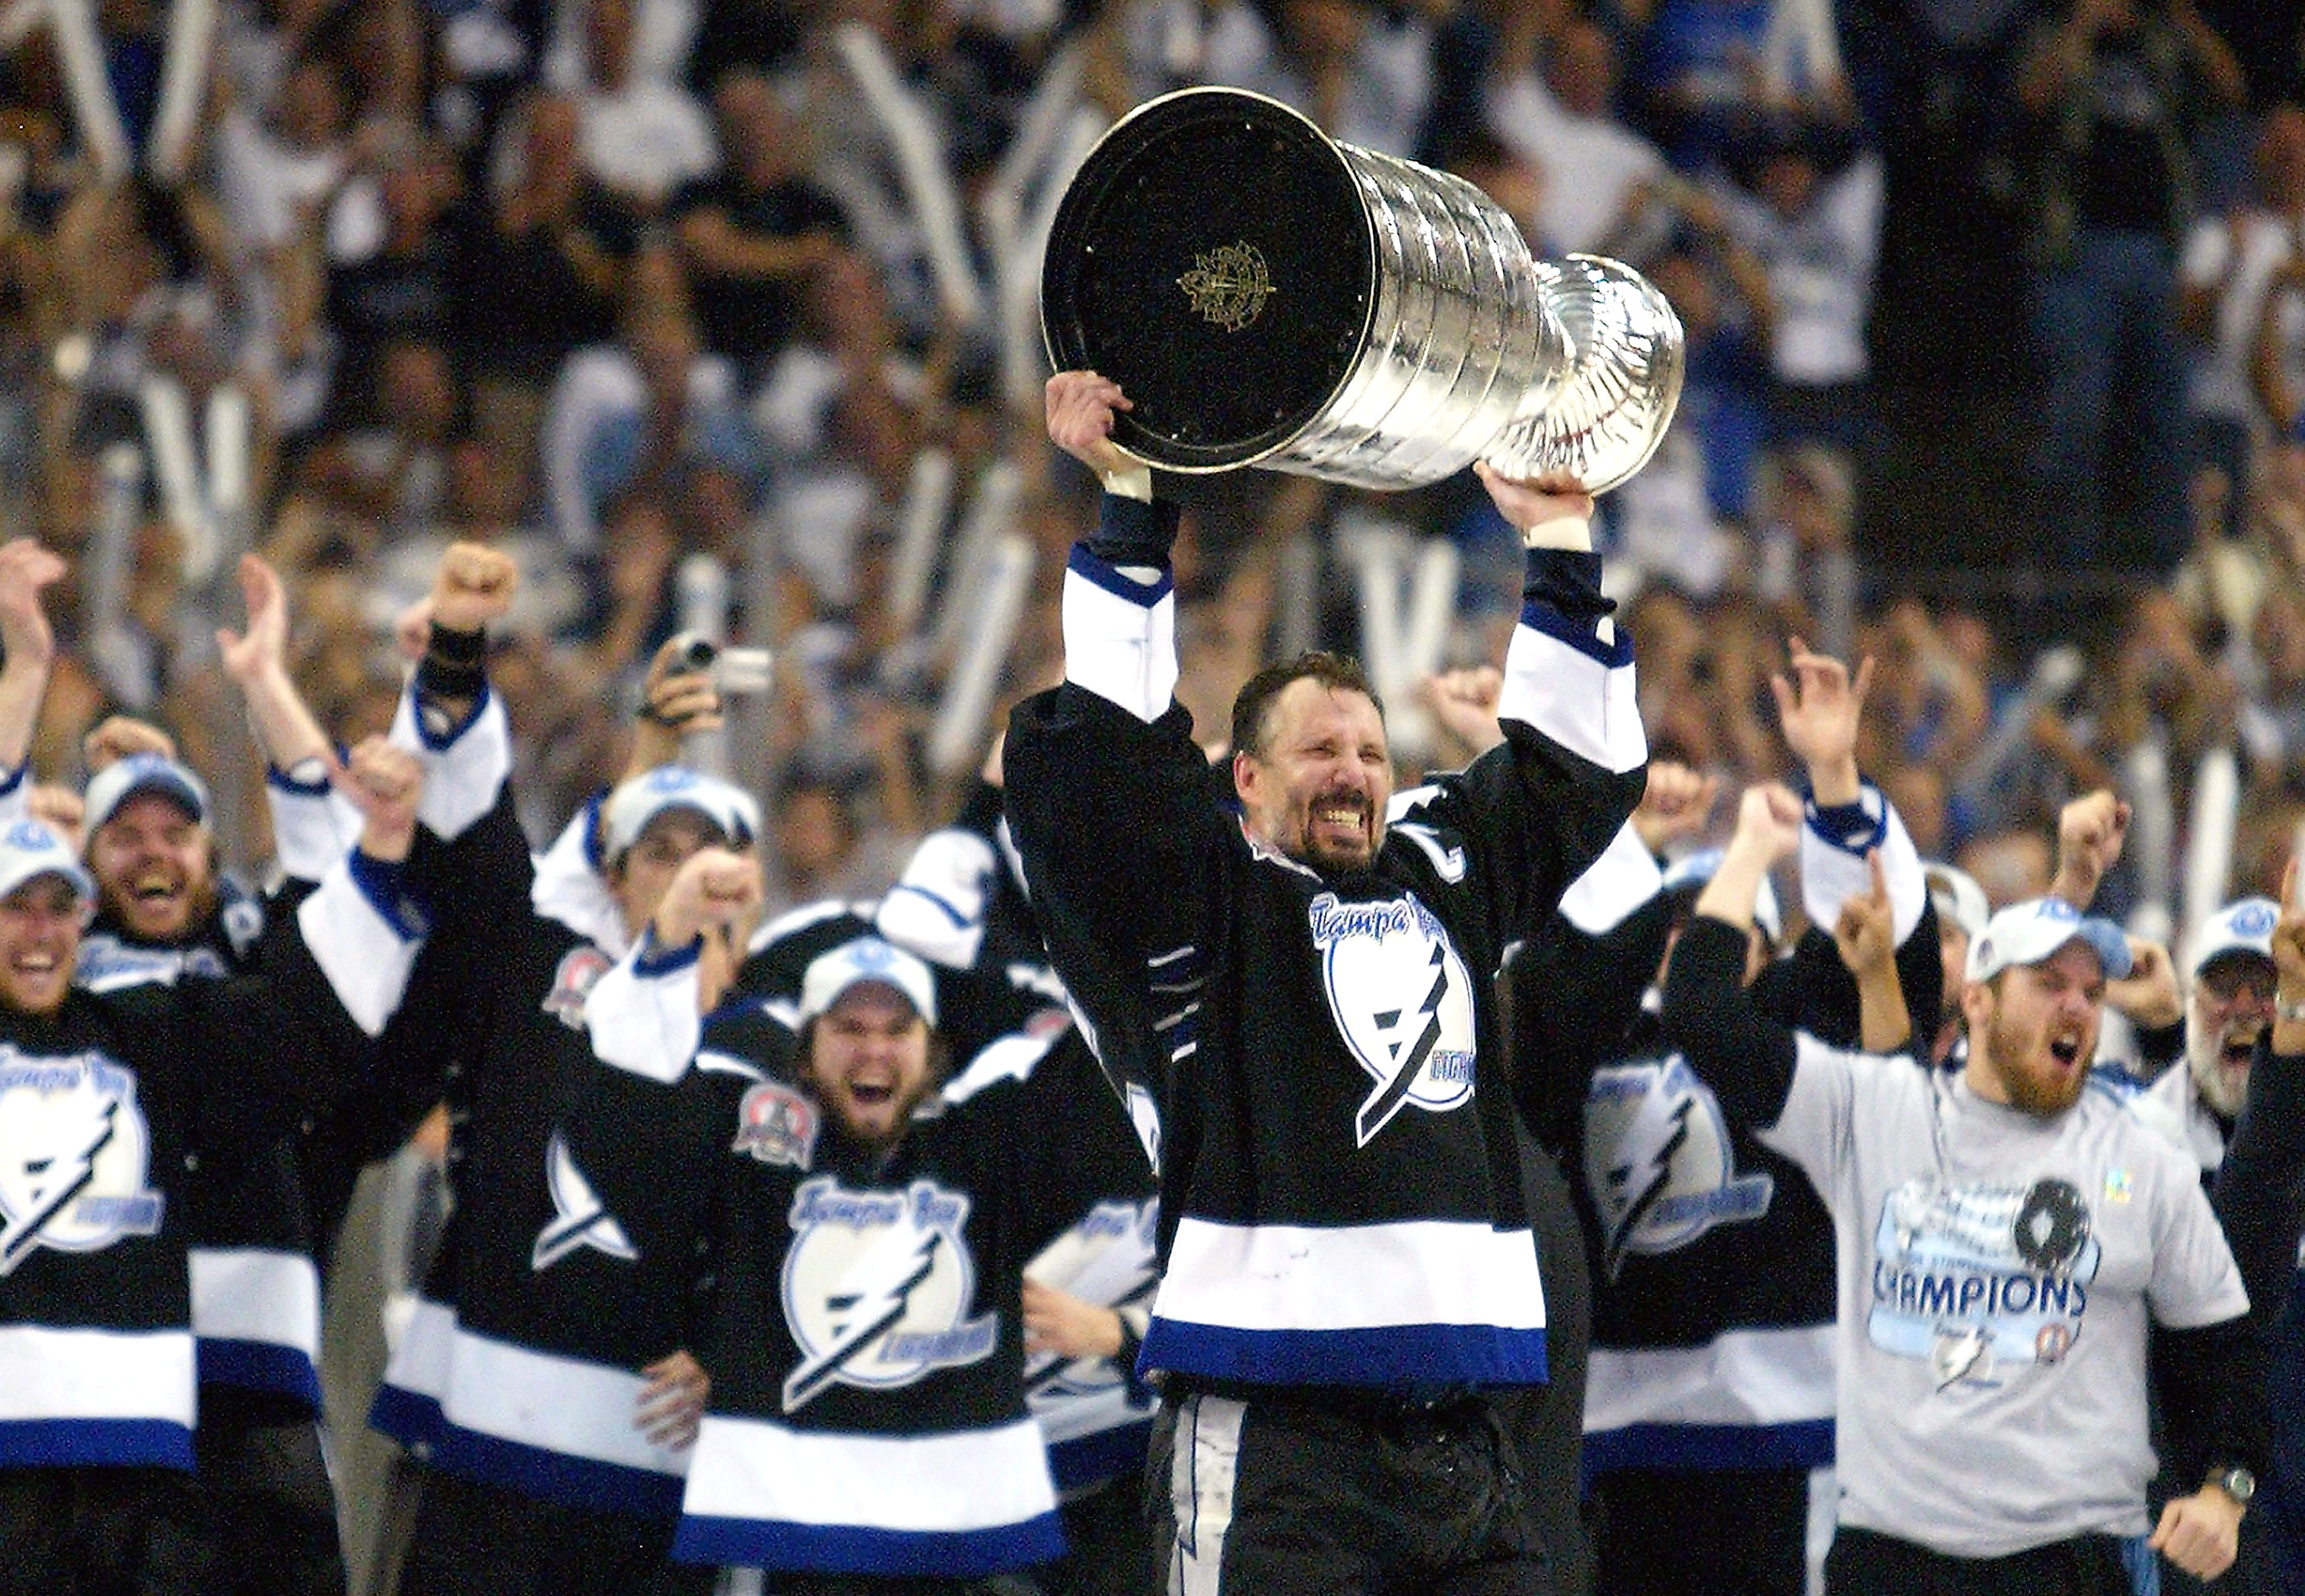 TAMPA, FL - JUNE 7:   Dave Andreychuk #25 of the Tampa Bay Lightning skates with the Stanley Cup after defeating the Calgary Flames in game seven of the NHL Stanley Cup Finals on June 7, 2004 at the St. Pete Times Forum in Tampa, Florida.  The Lightning w